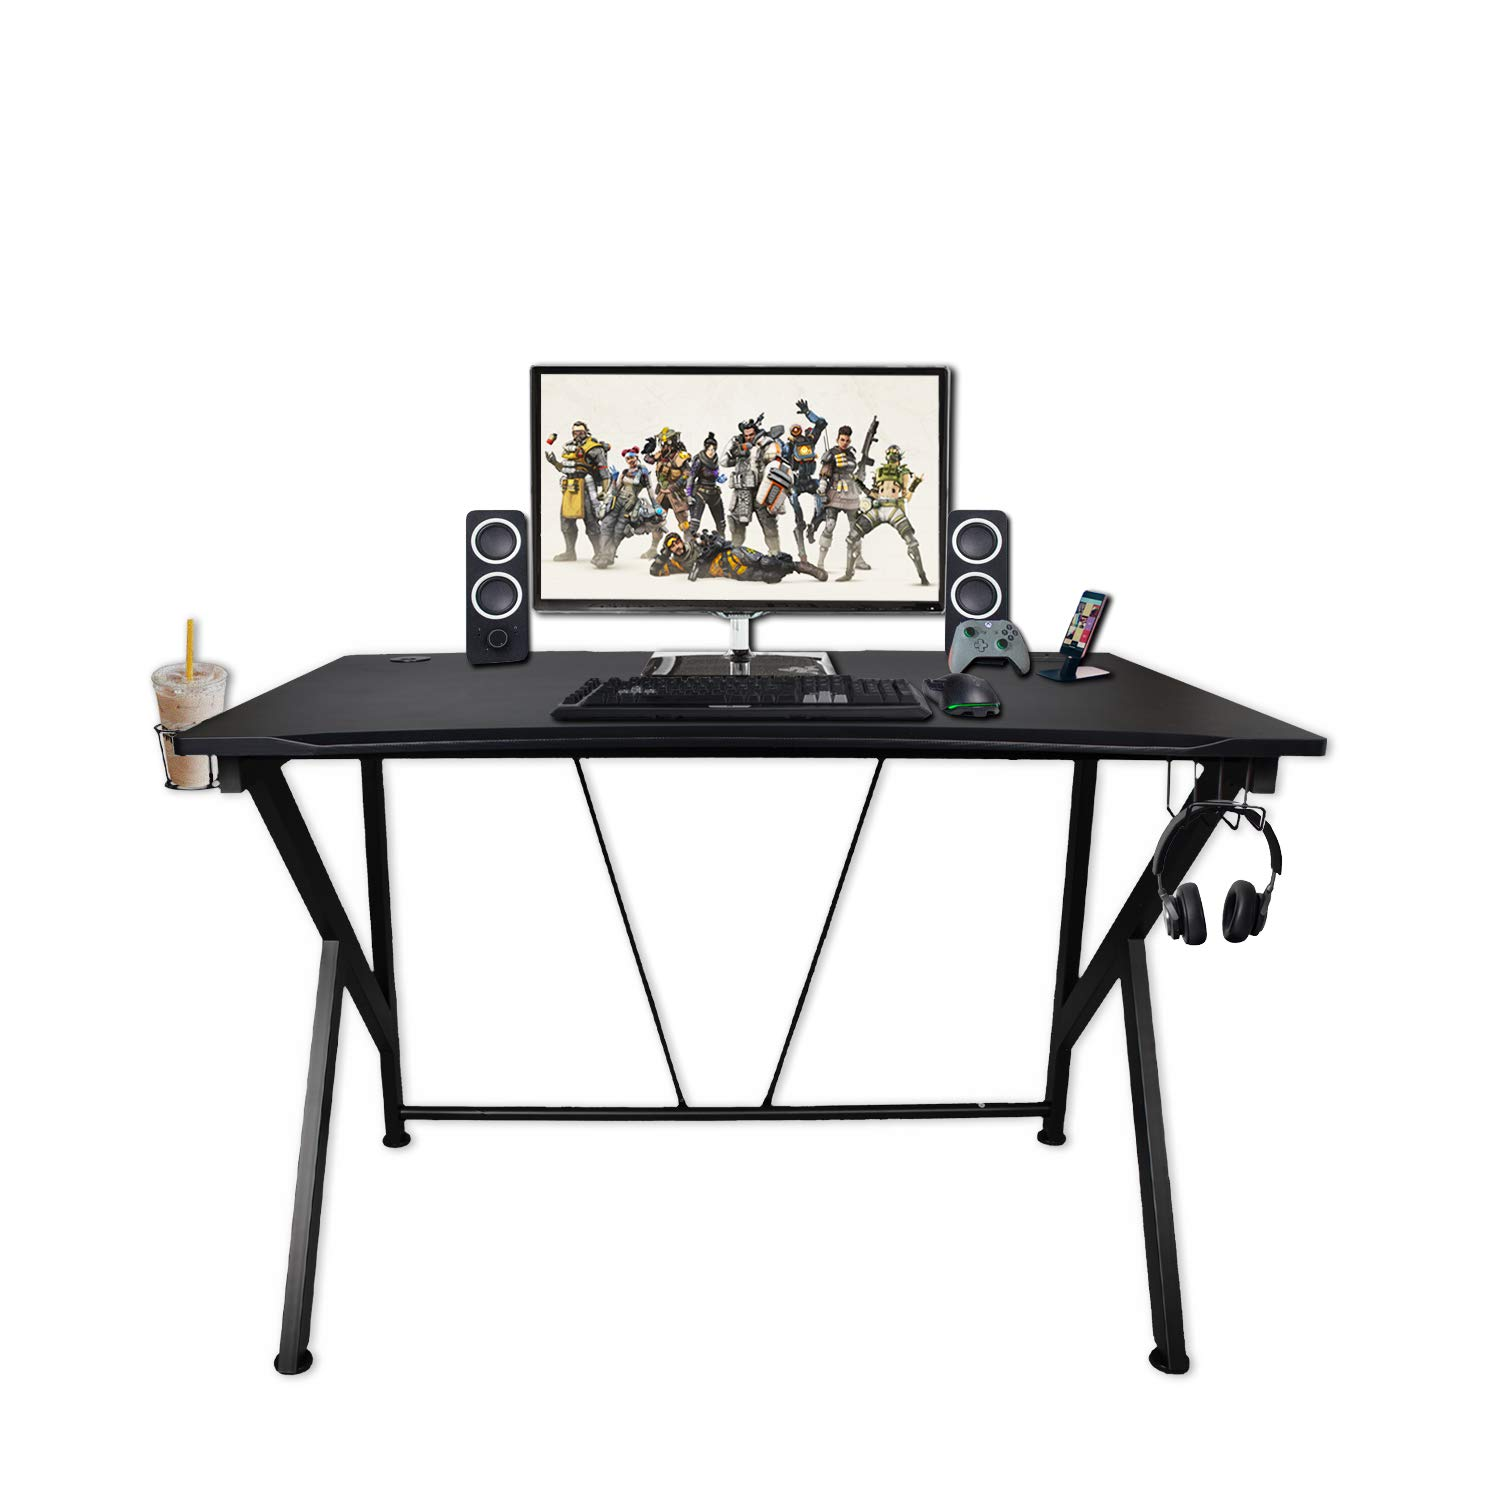 K-Shaped Gaming Desk 45.7 Black Carbonized Pattern Gaming Table Home Computer Desk with USB Charging Port,Cup Holder and Headphone Hook Gamer Gaming Table Desk